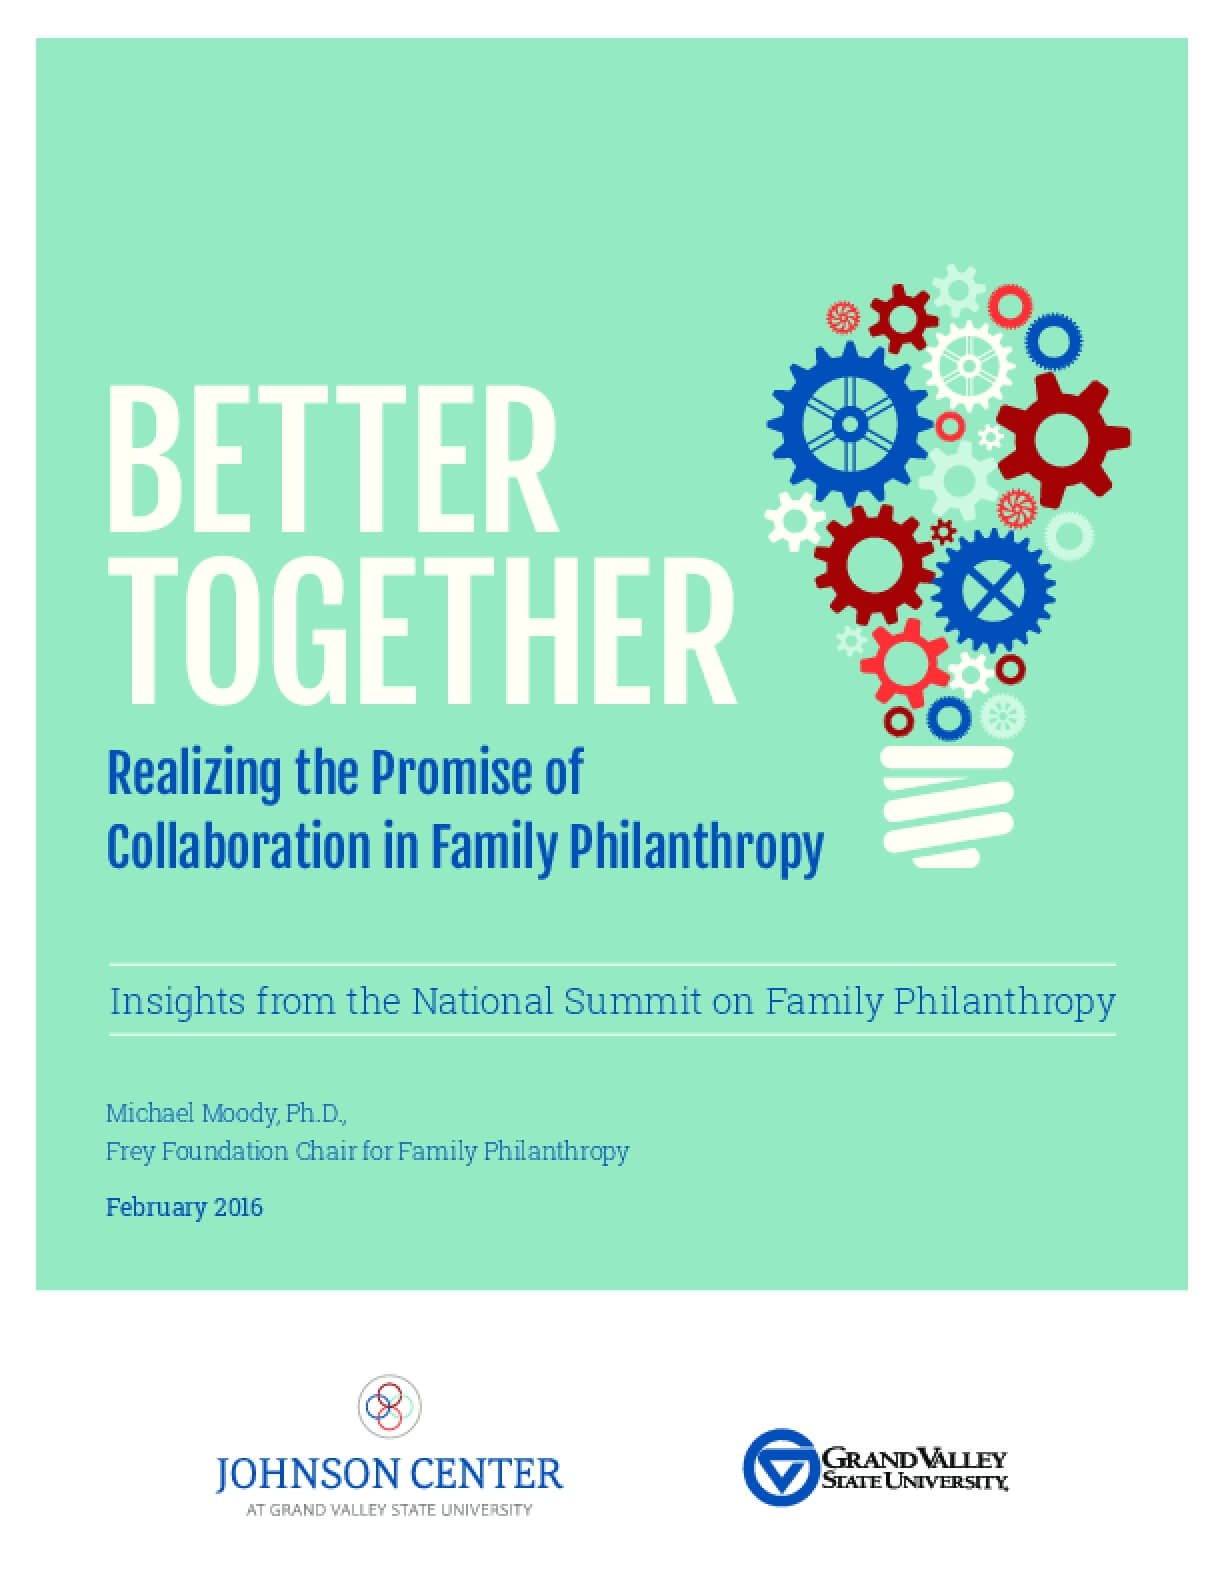 Better Together: Realizing the Promise of Collaboration in Family Philanthropy